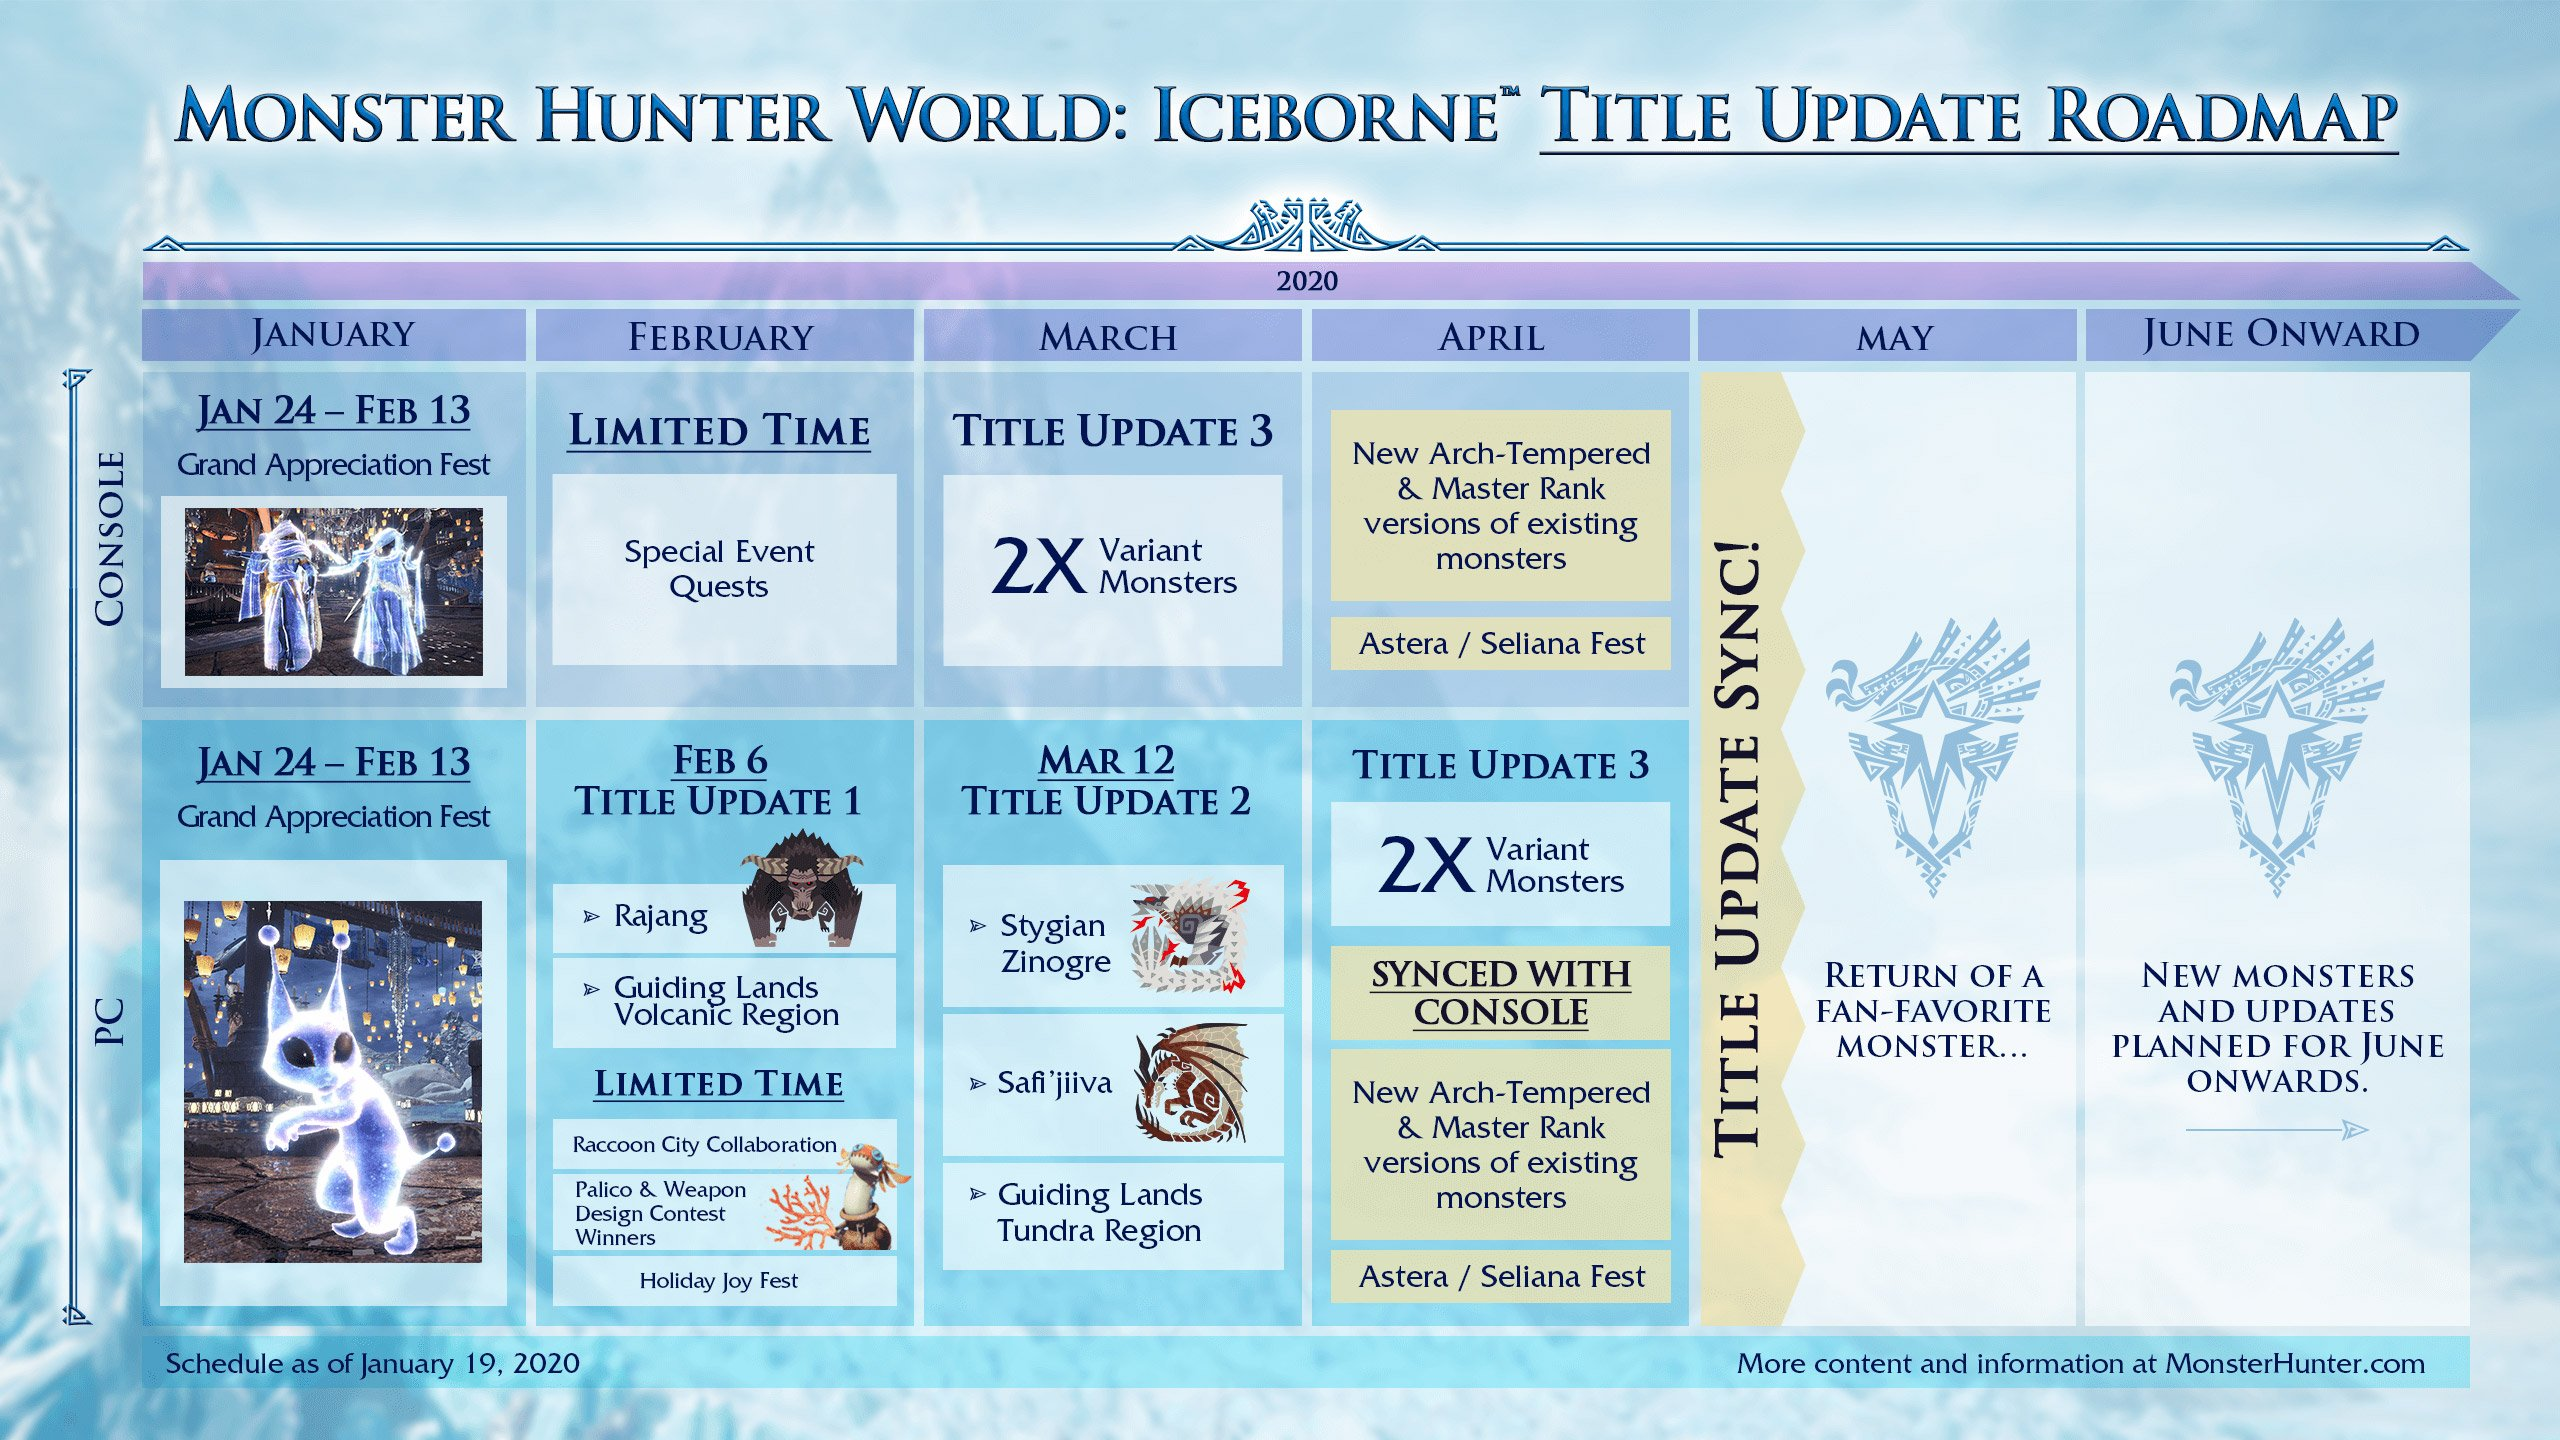 Monster Hunter World: Iceborne 2020 roadmap for PC and consoles